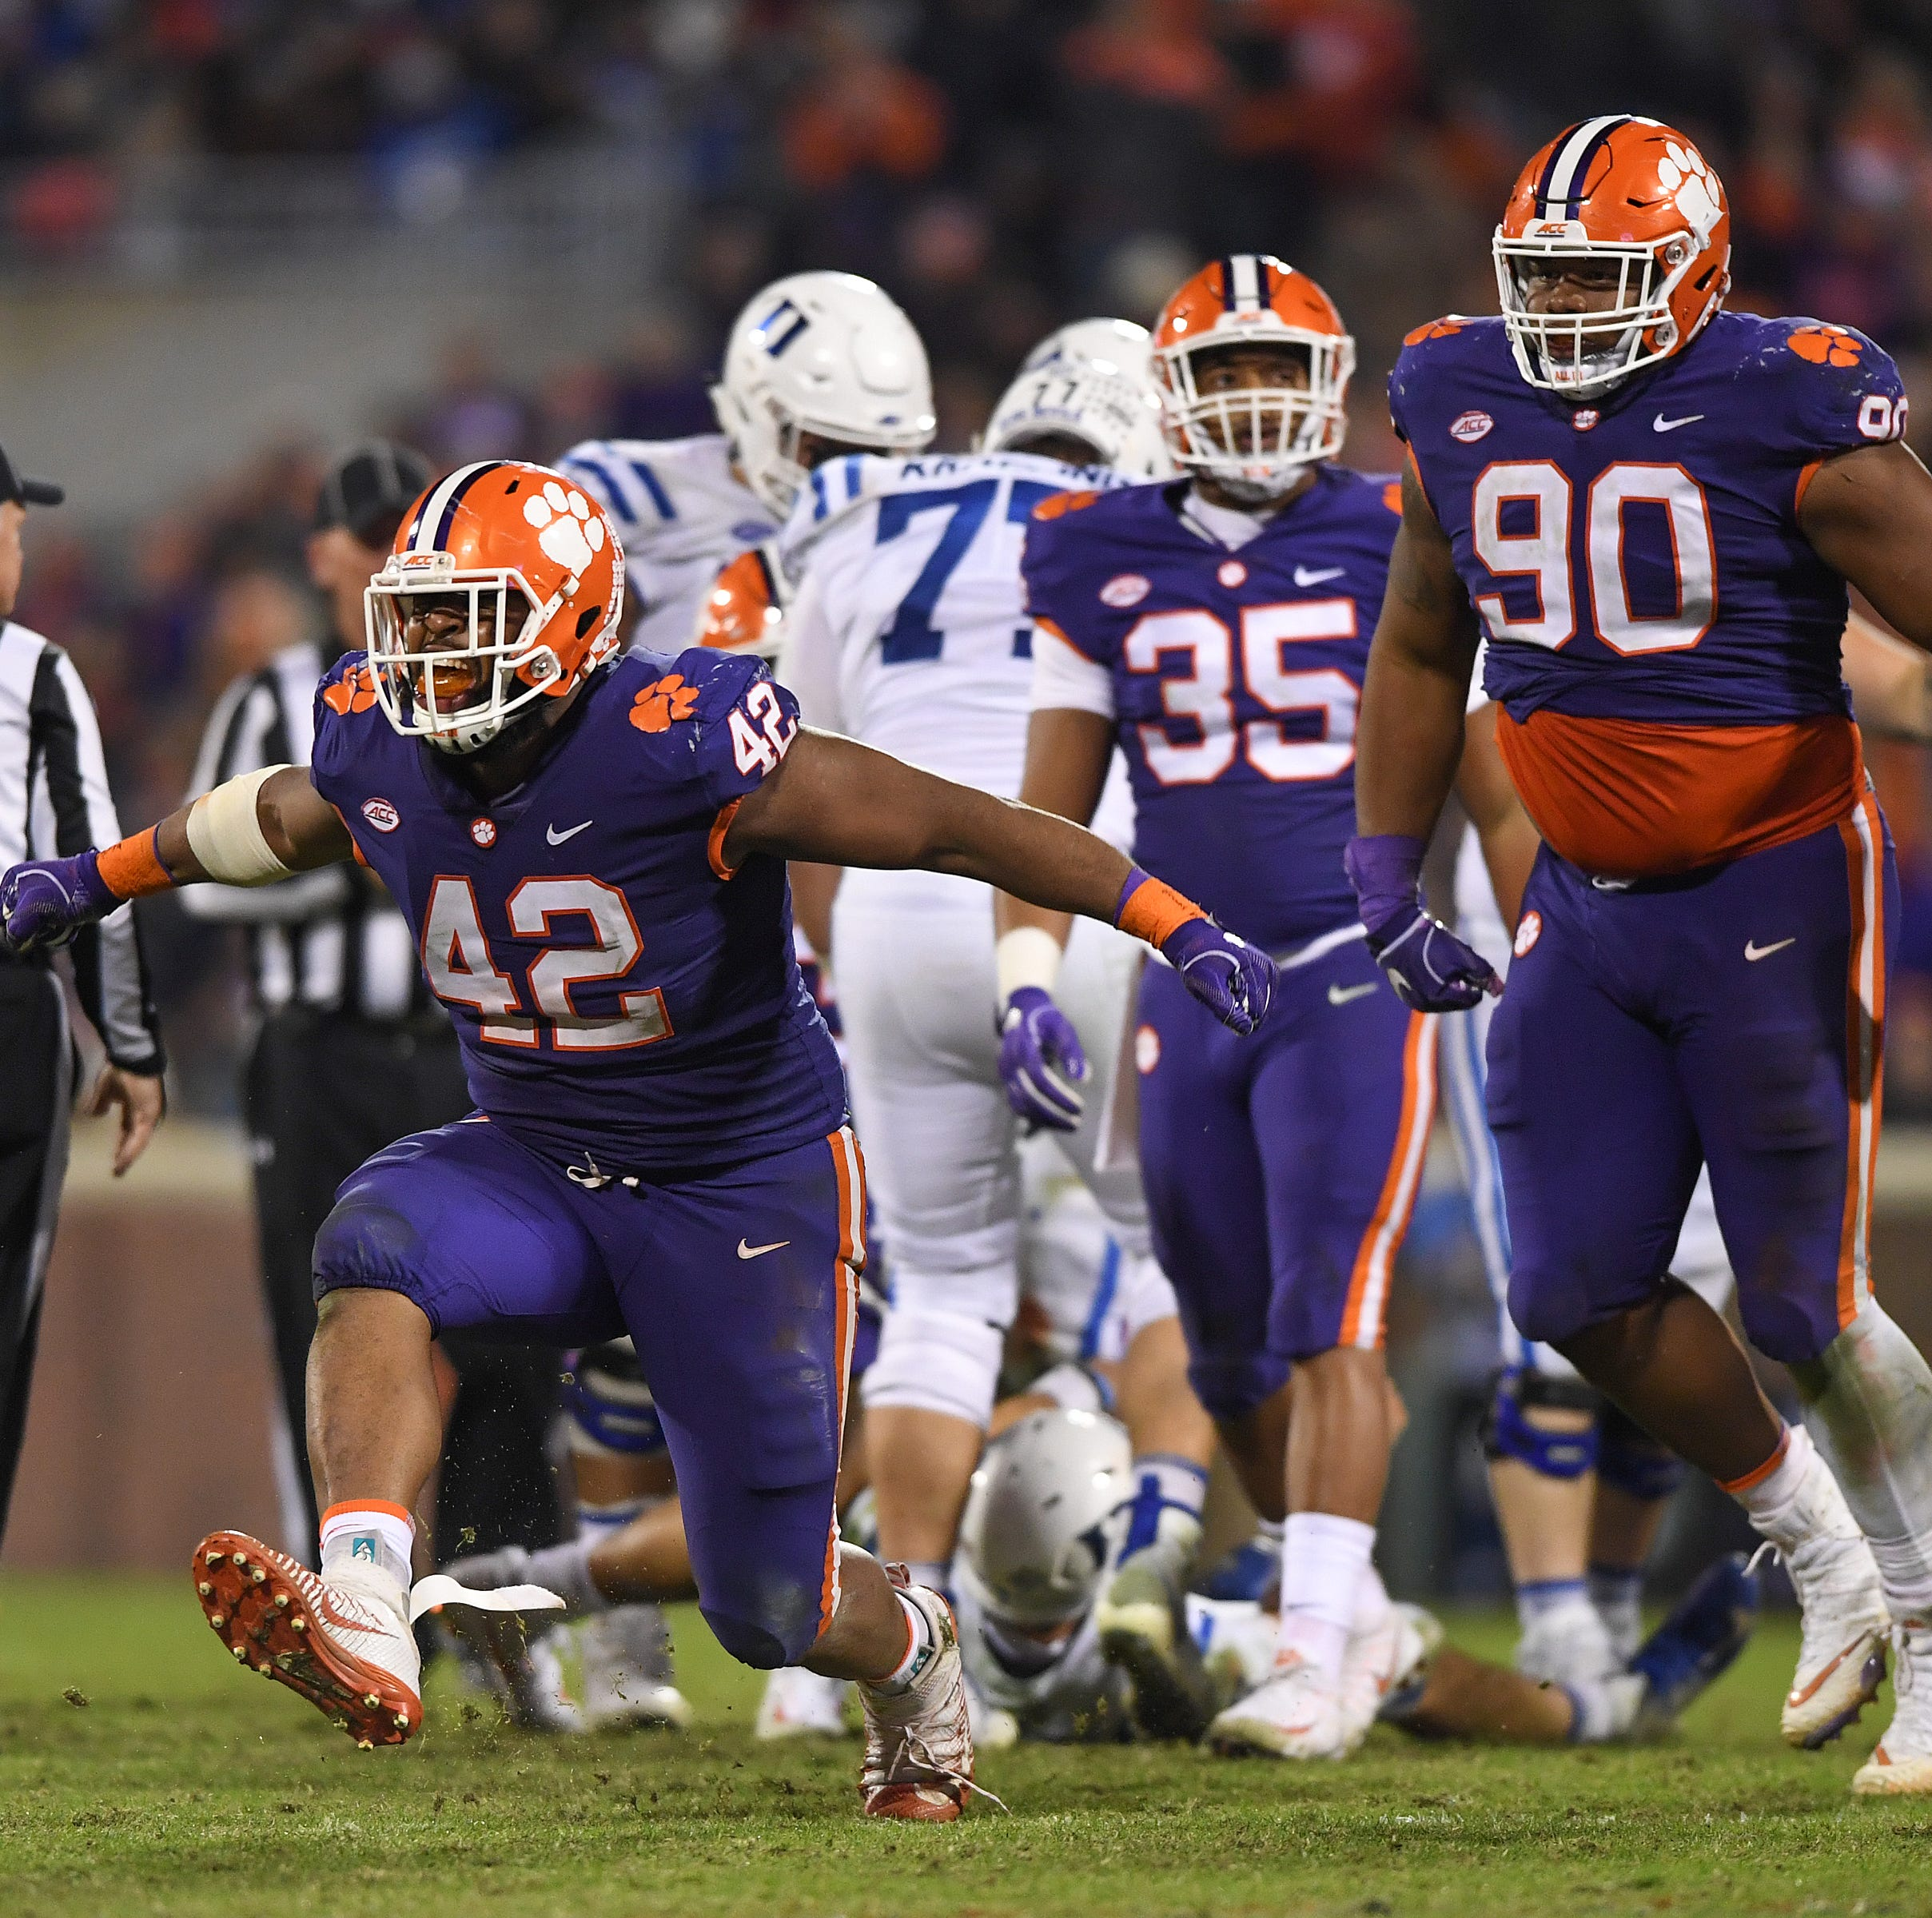 Clemson football: Old revenge can incentivize Tigers against South Carolina, Pittsburgh